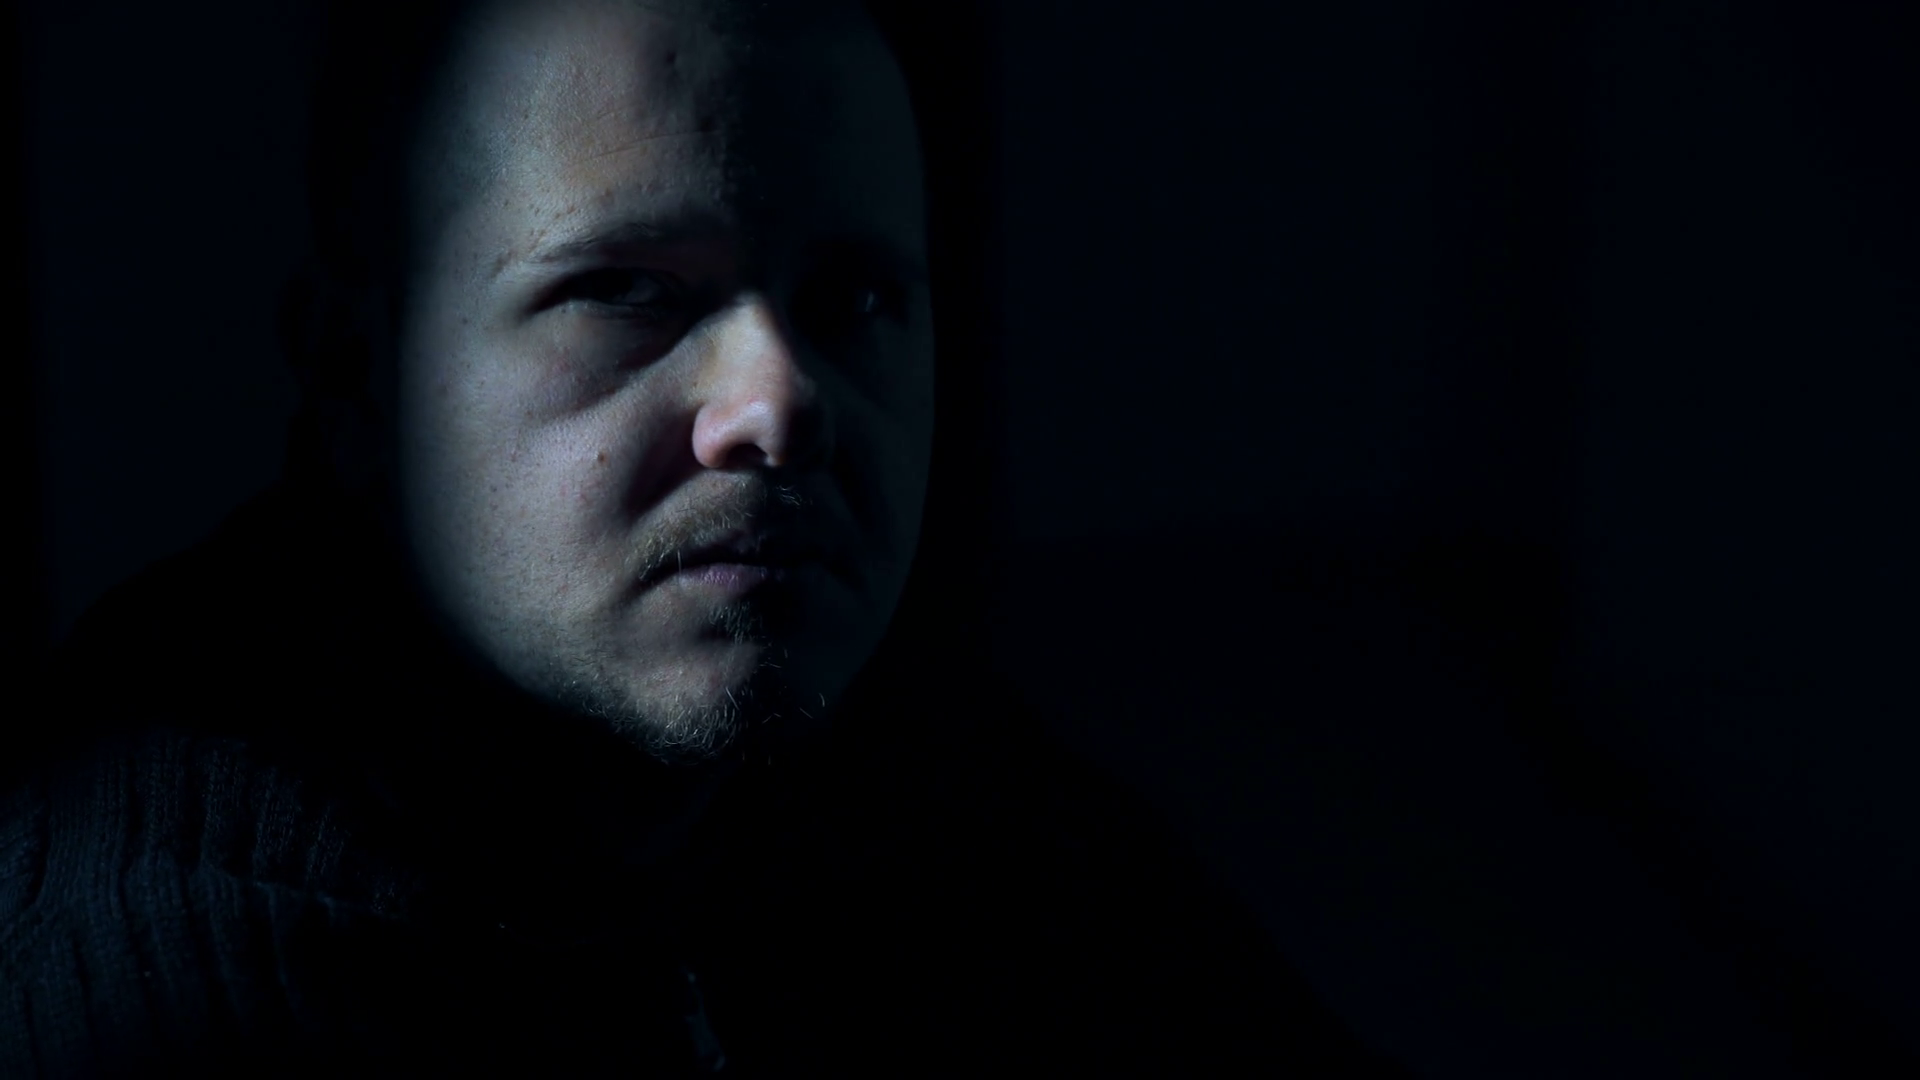 A mysterious man in the darkness, turns and looks at the camera with ...